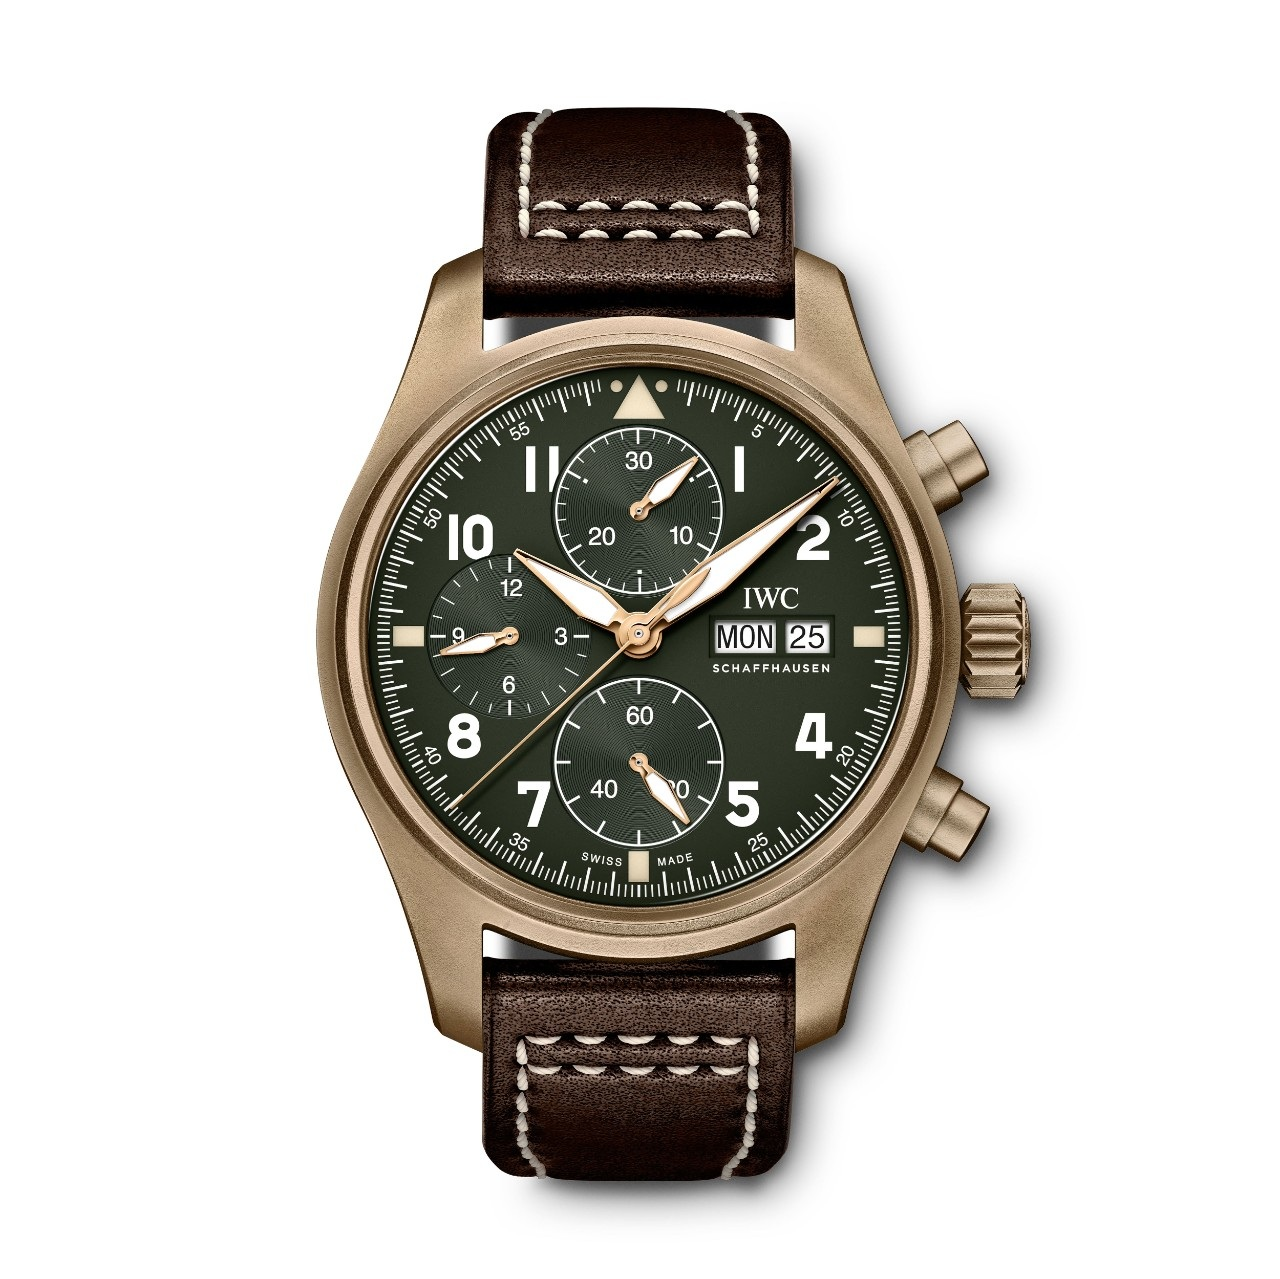 The IWC Spitefire Chronograph, a preview of what's to come from the brand at SIHH 2019